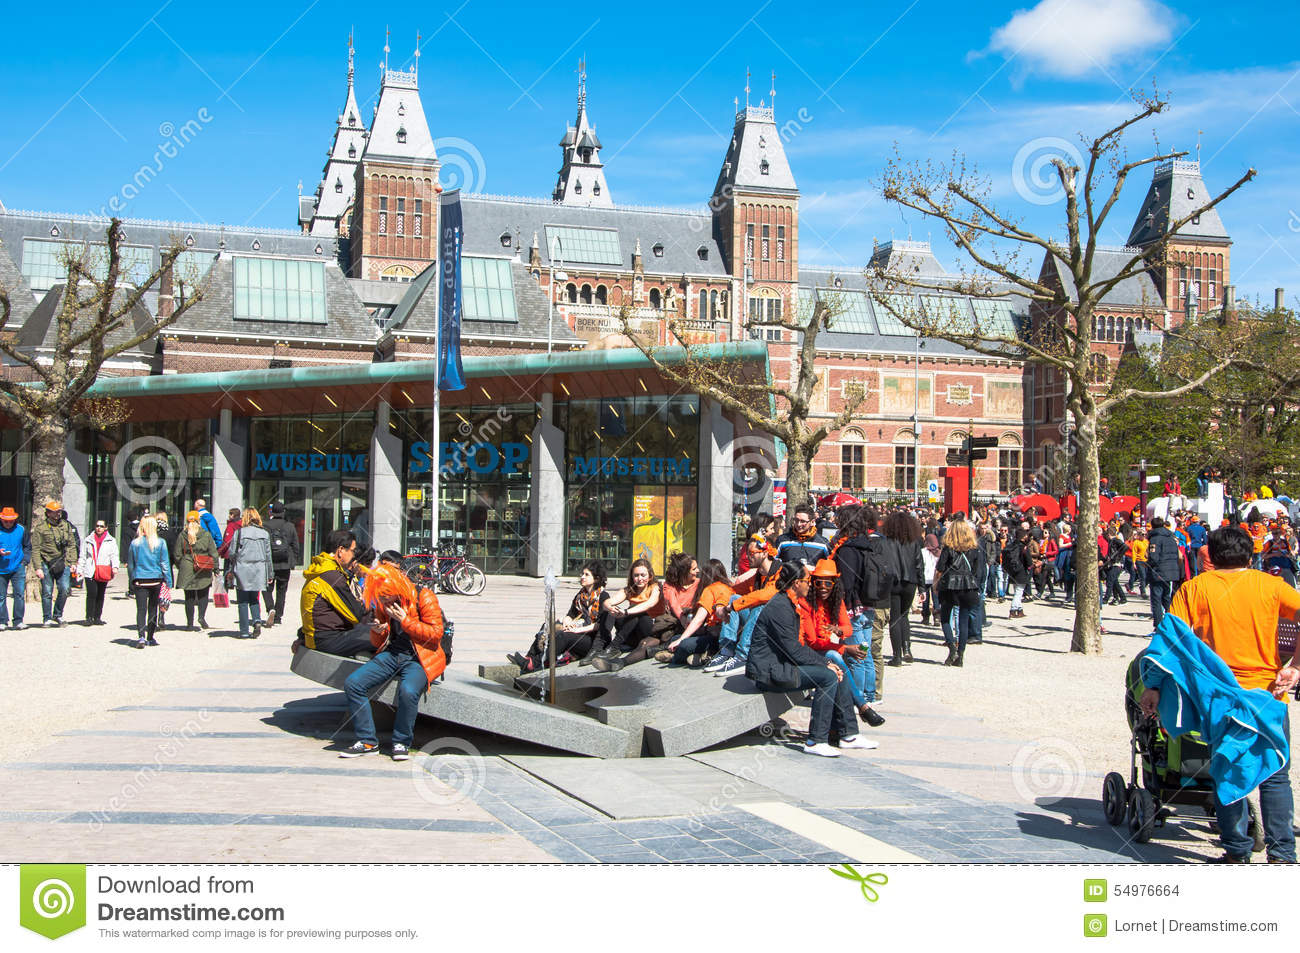 AMSTERDAM-APRIL 27: Lokalang-turister på Museumpleinen under konungs dag på April 27,2015